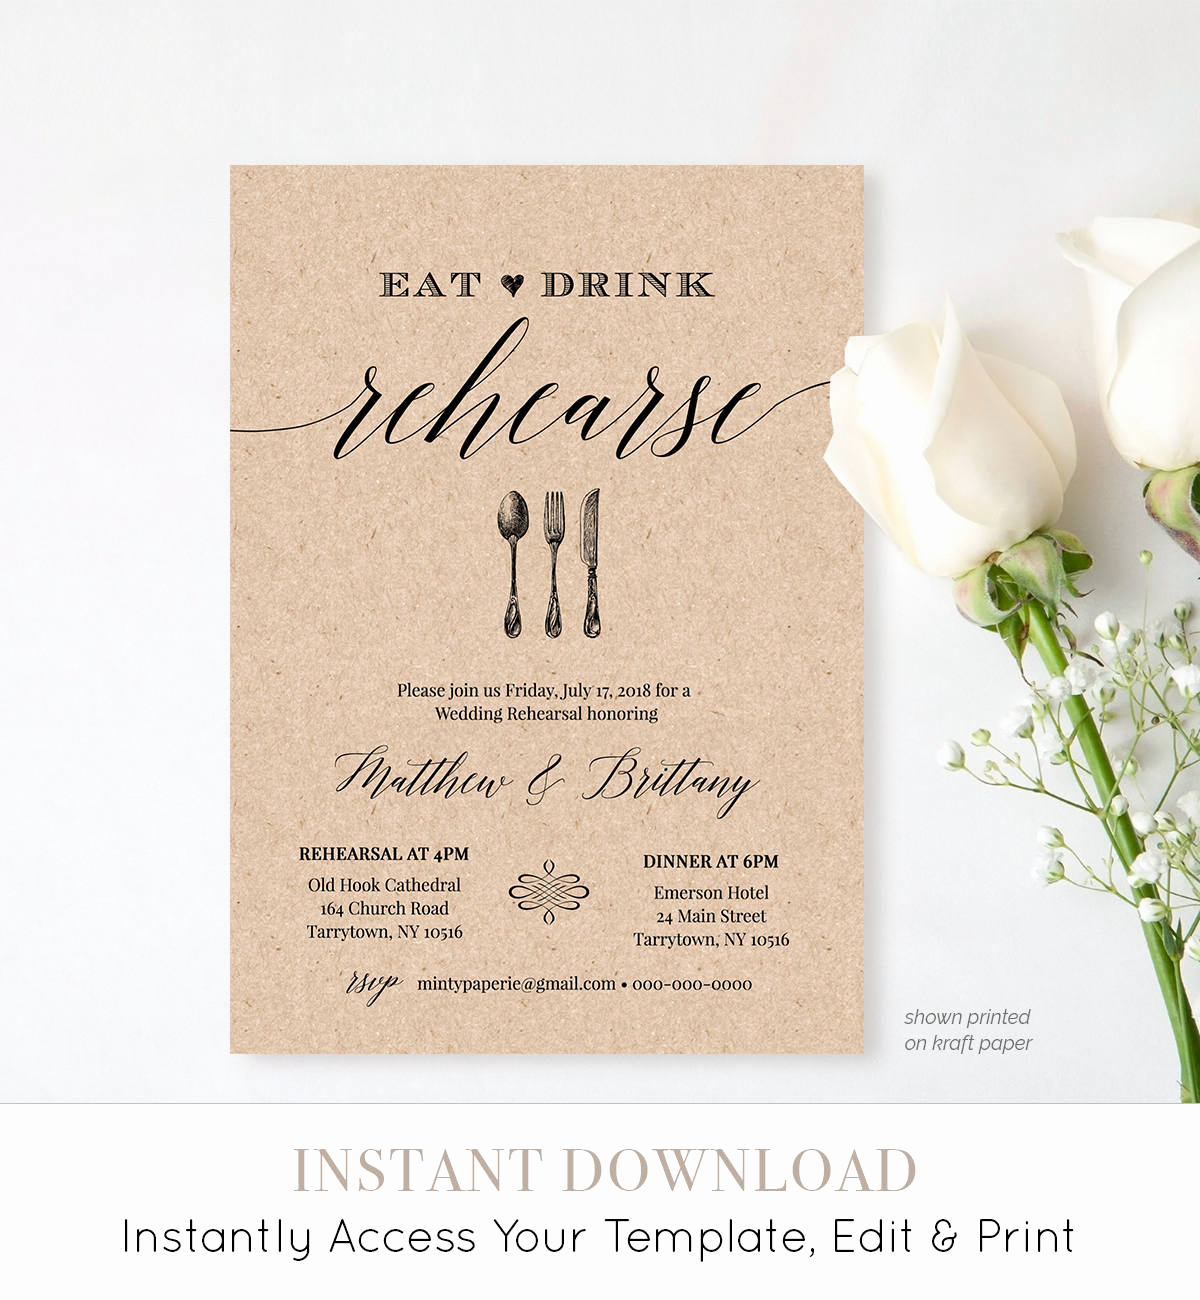 Rehearsal Dinner Invitation Template Lovely Rehearsal Dinner Invitation Template Printable Rustic Wedding